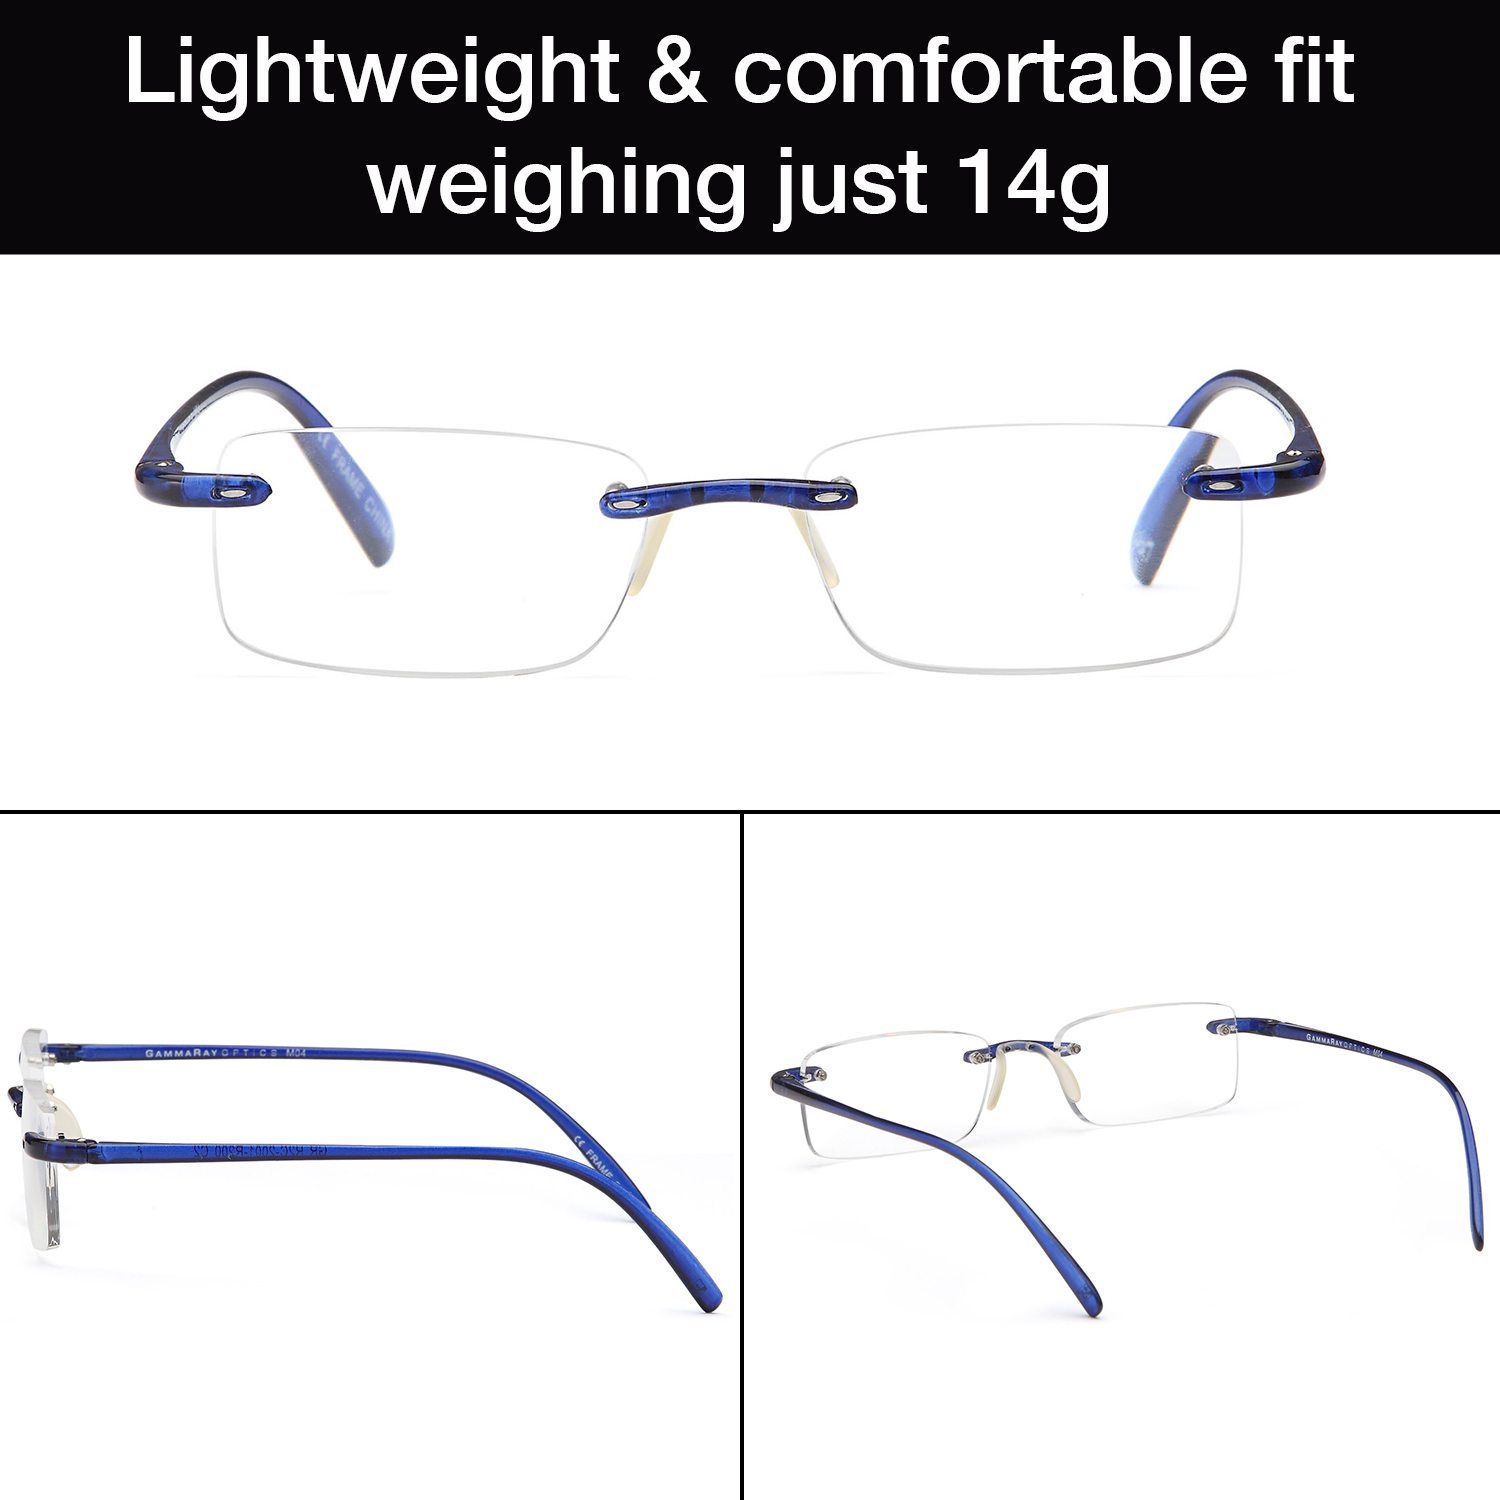 4145e8c3a32 GAMMA RAY 2 Pack of Super Lightweight Flex Arm Slim Rimless Readers with  Magnification - 1.75x Magnification - Walmart.com